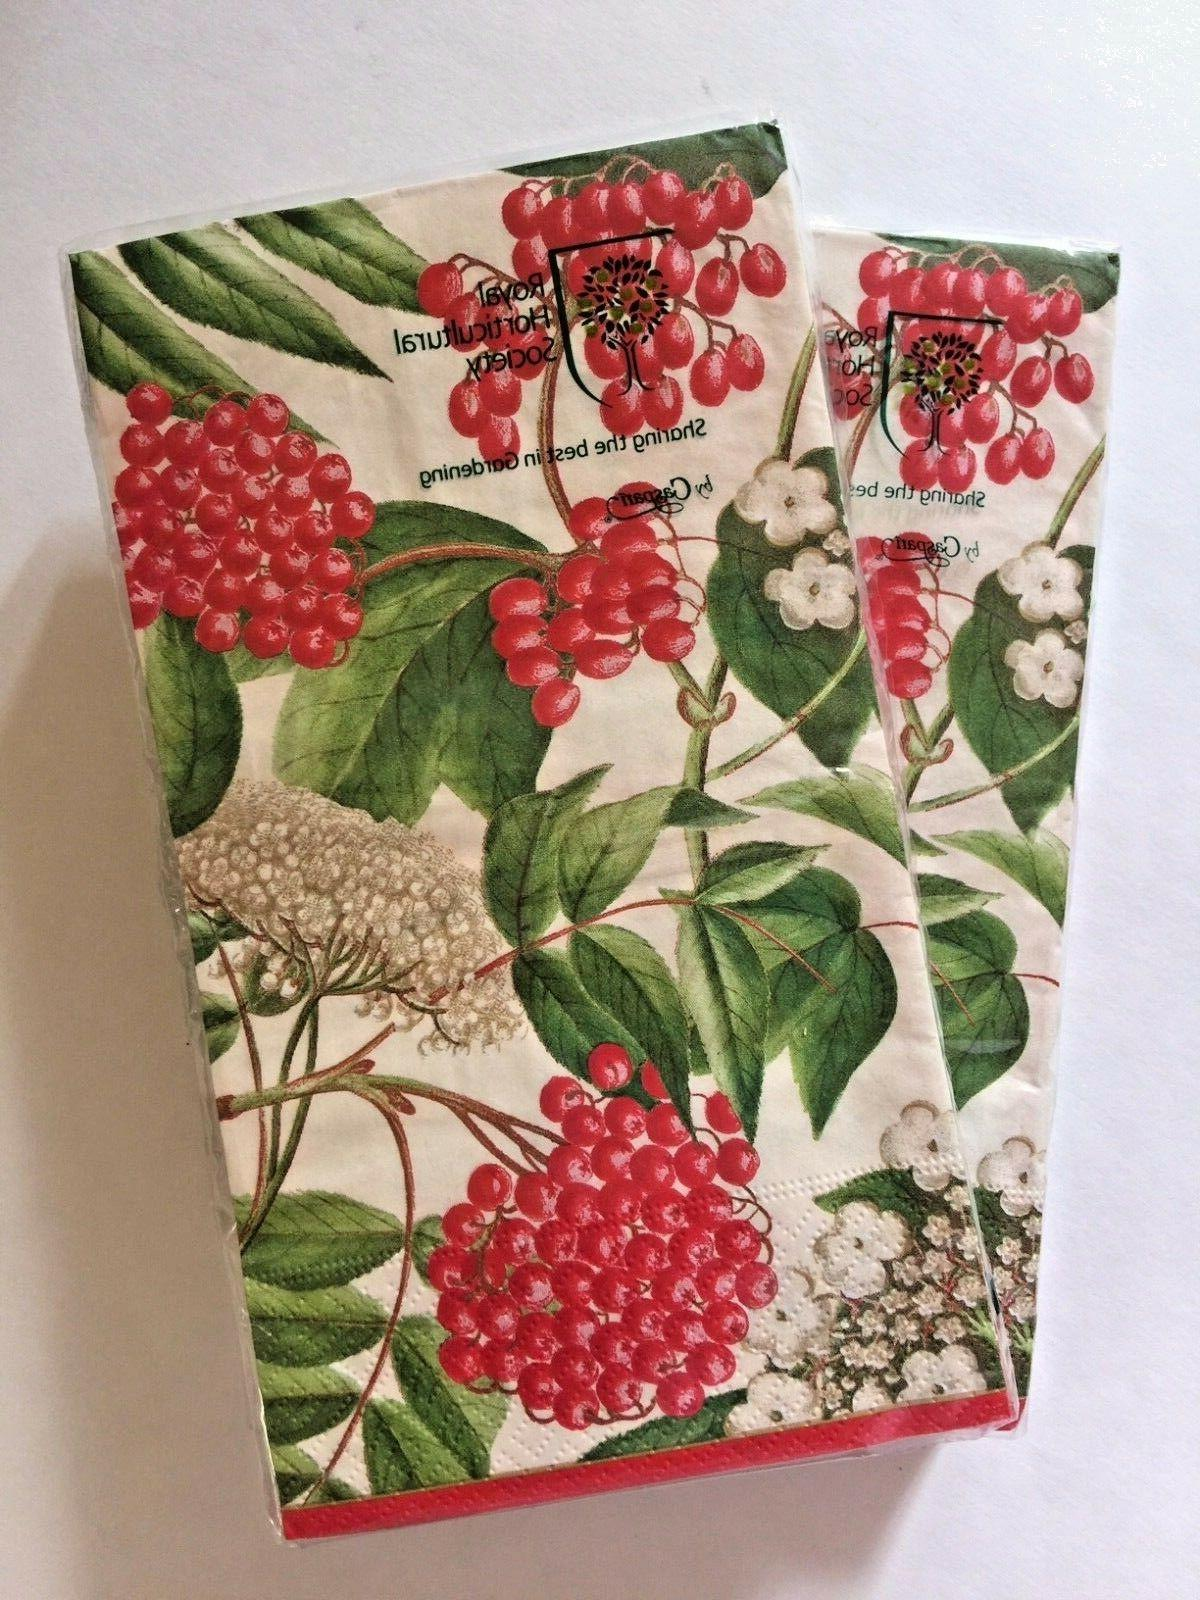 NEW! TWO CASPARI Ply HAND GUEST TOWELS Floral Holiday Bathroom Decor